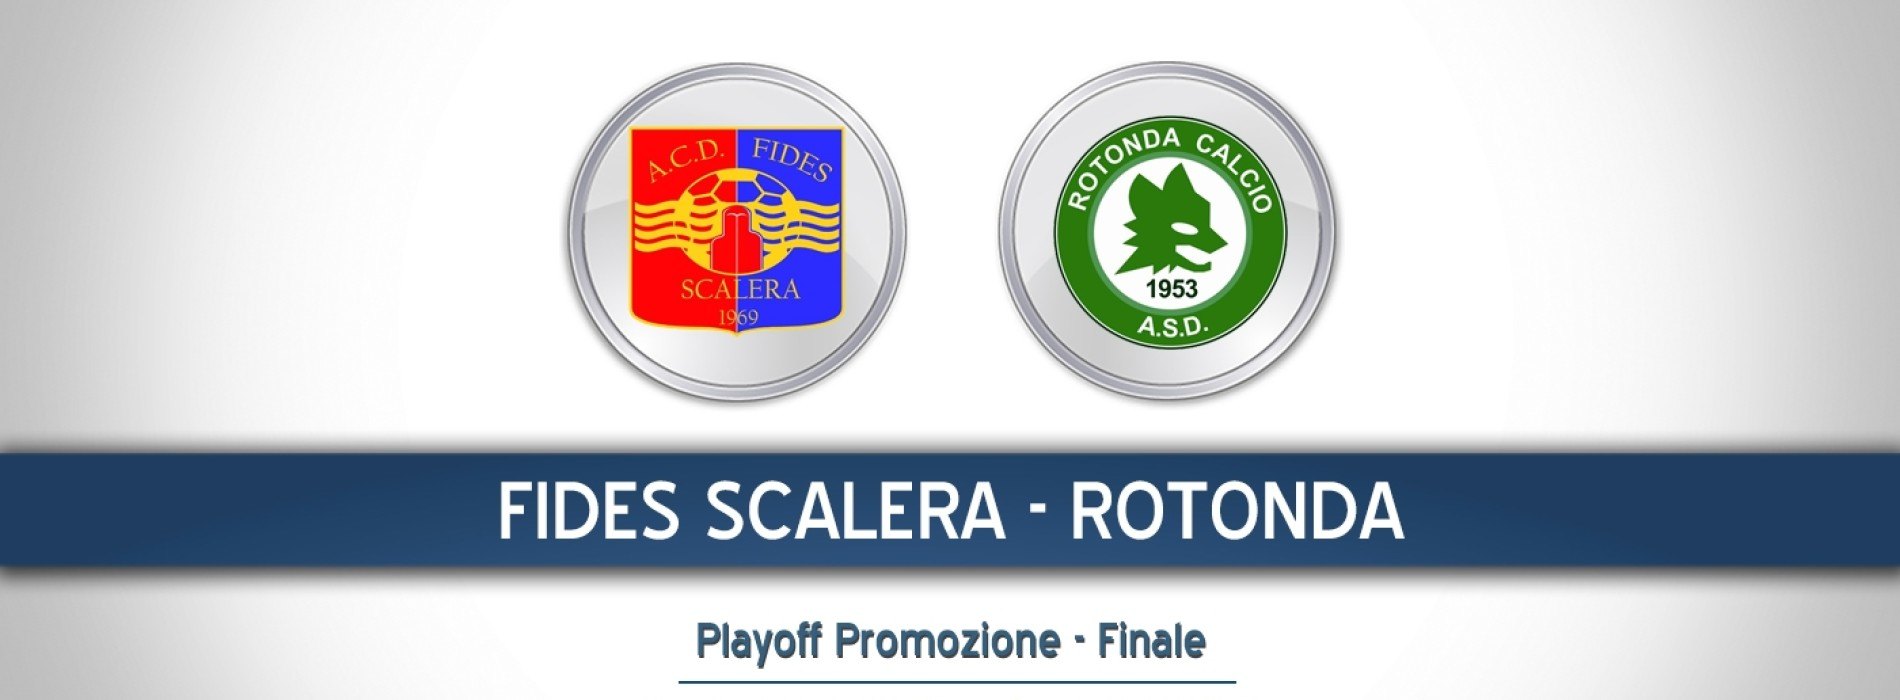 Fides Scalera-Rotonda calcio in diretta streaming su Lnd Basilicata Channel